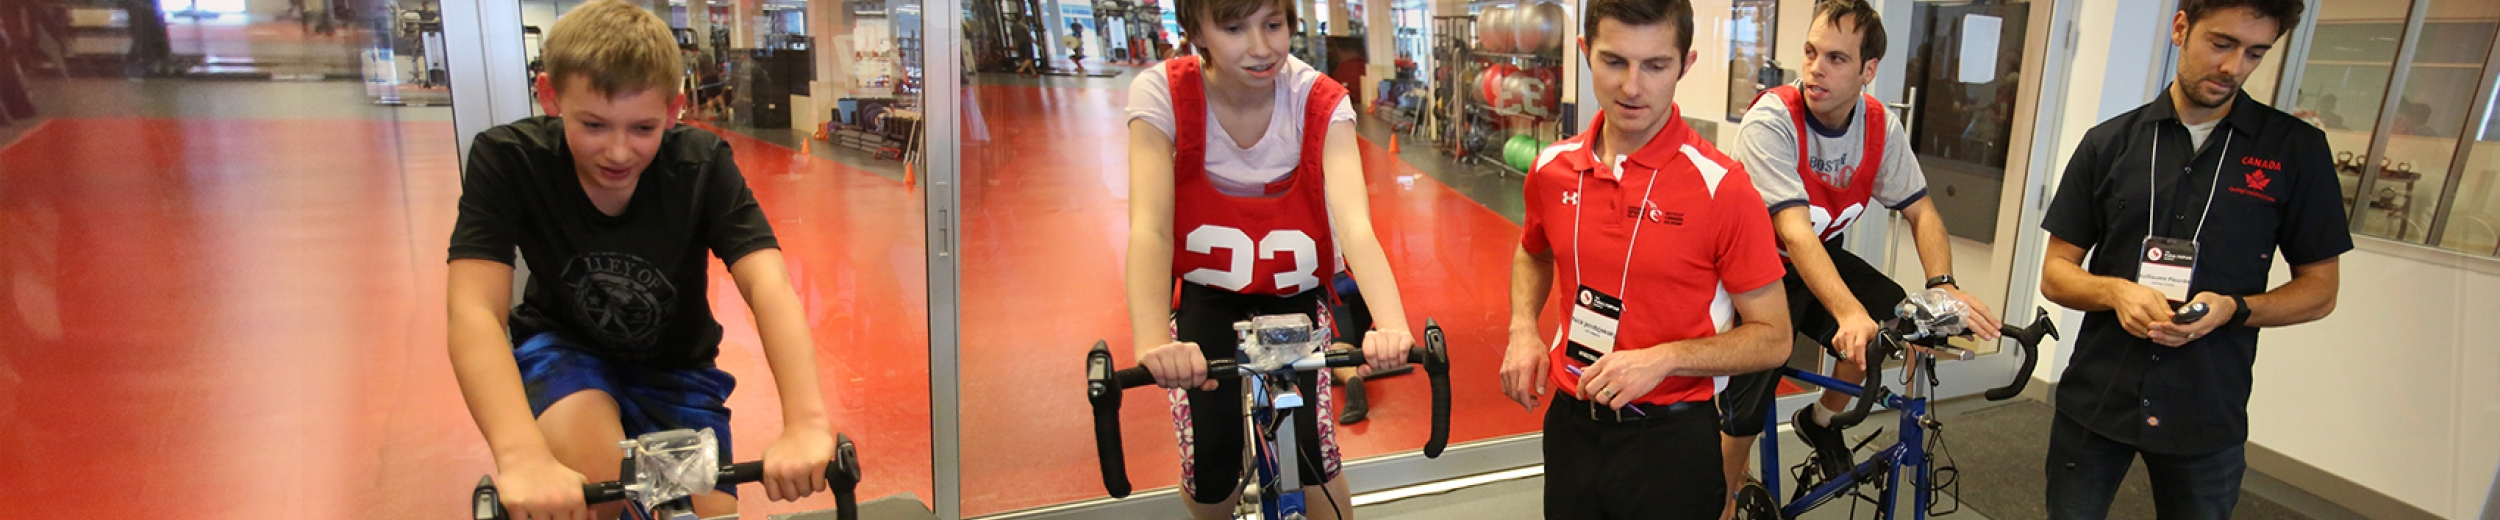 Athletes on stationary bikes